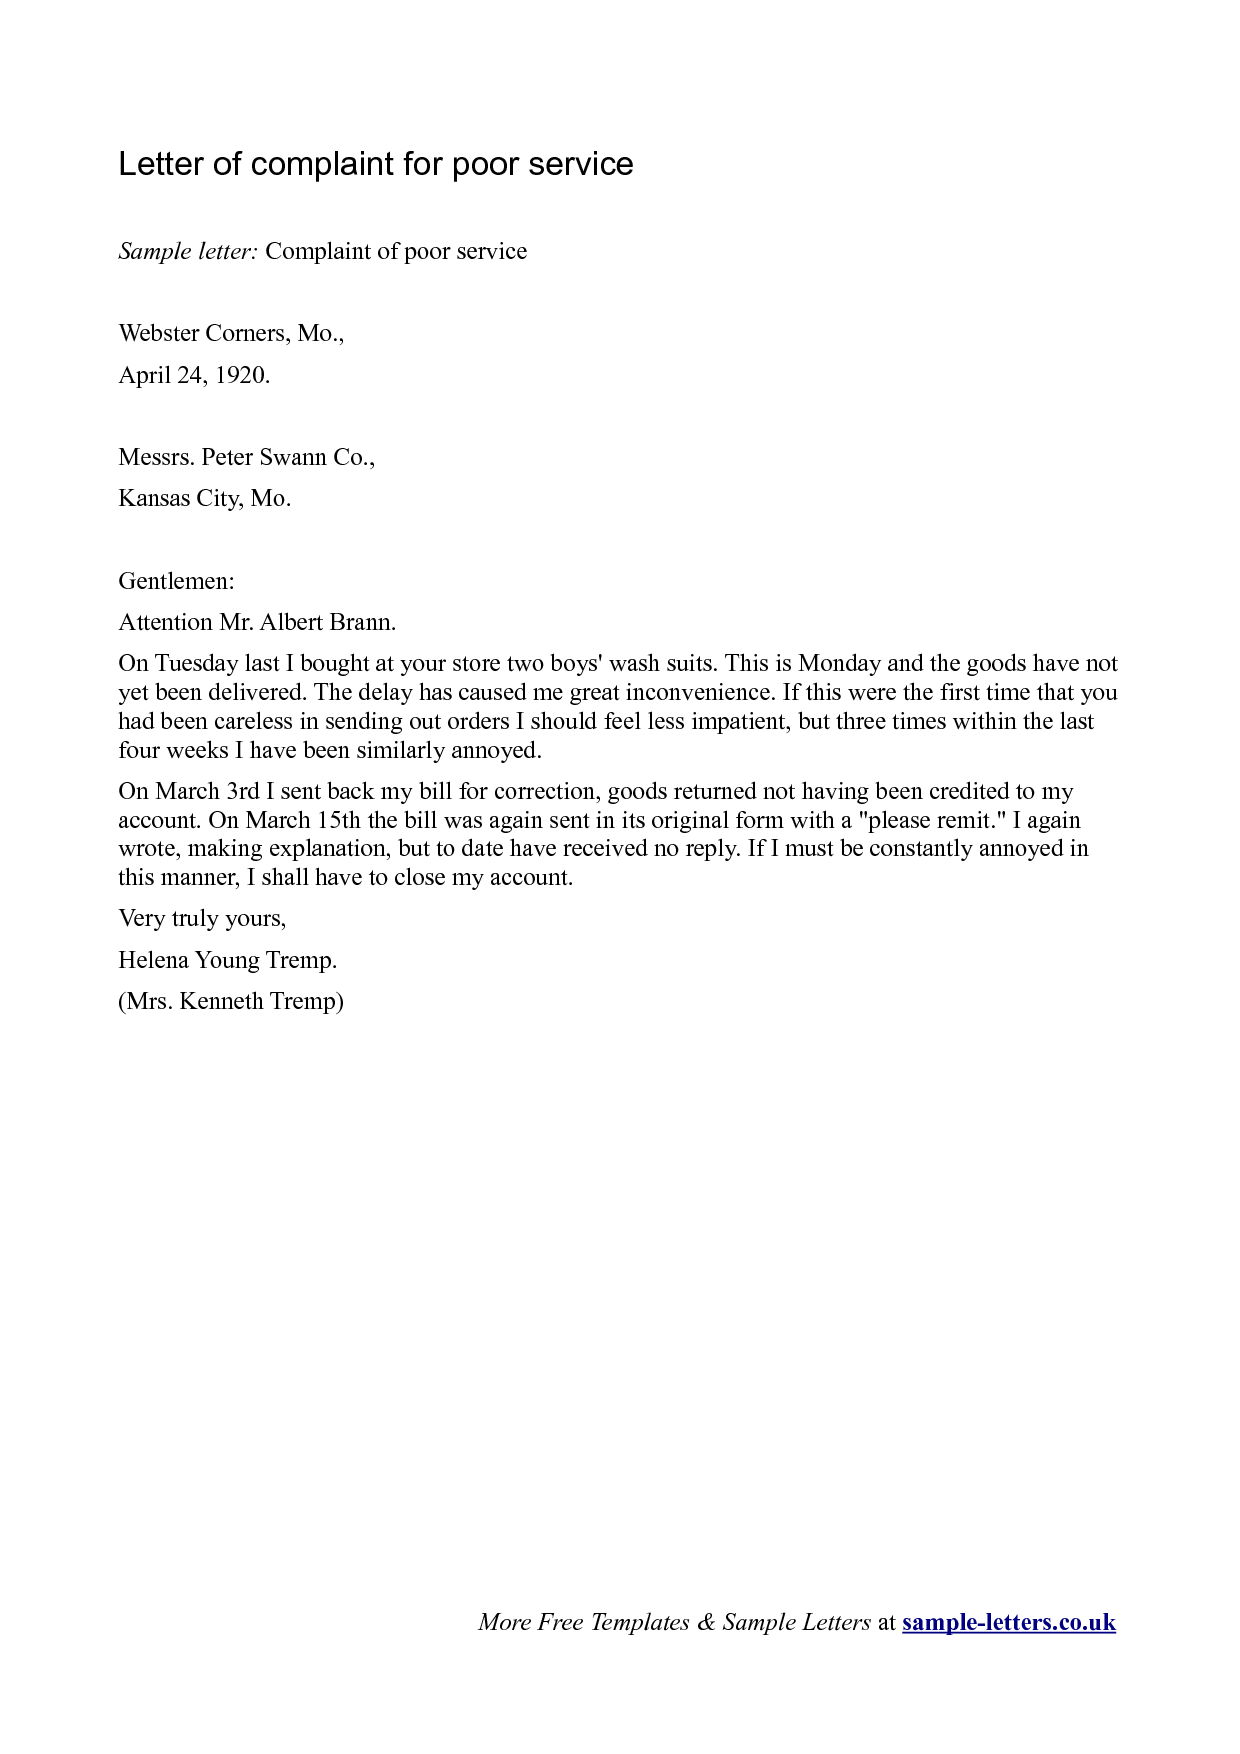 Sample Letter Of Complaint For Poor Service Archives Corrochio